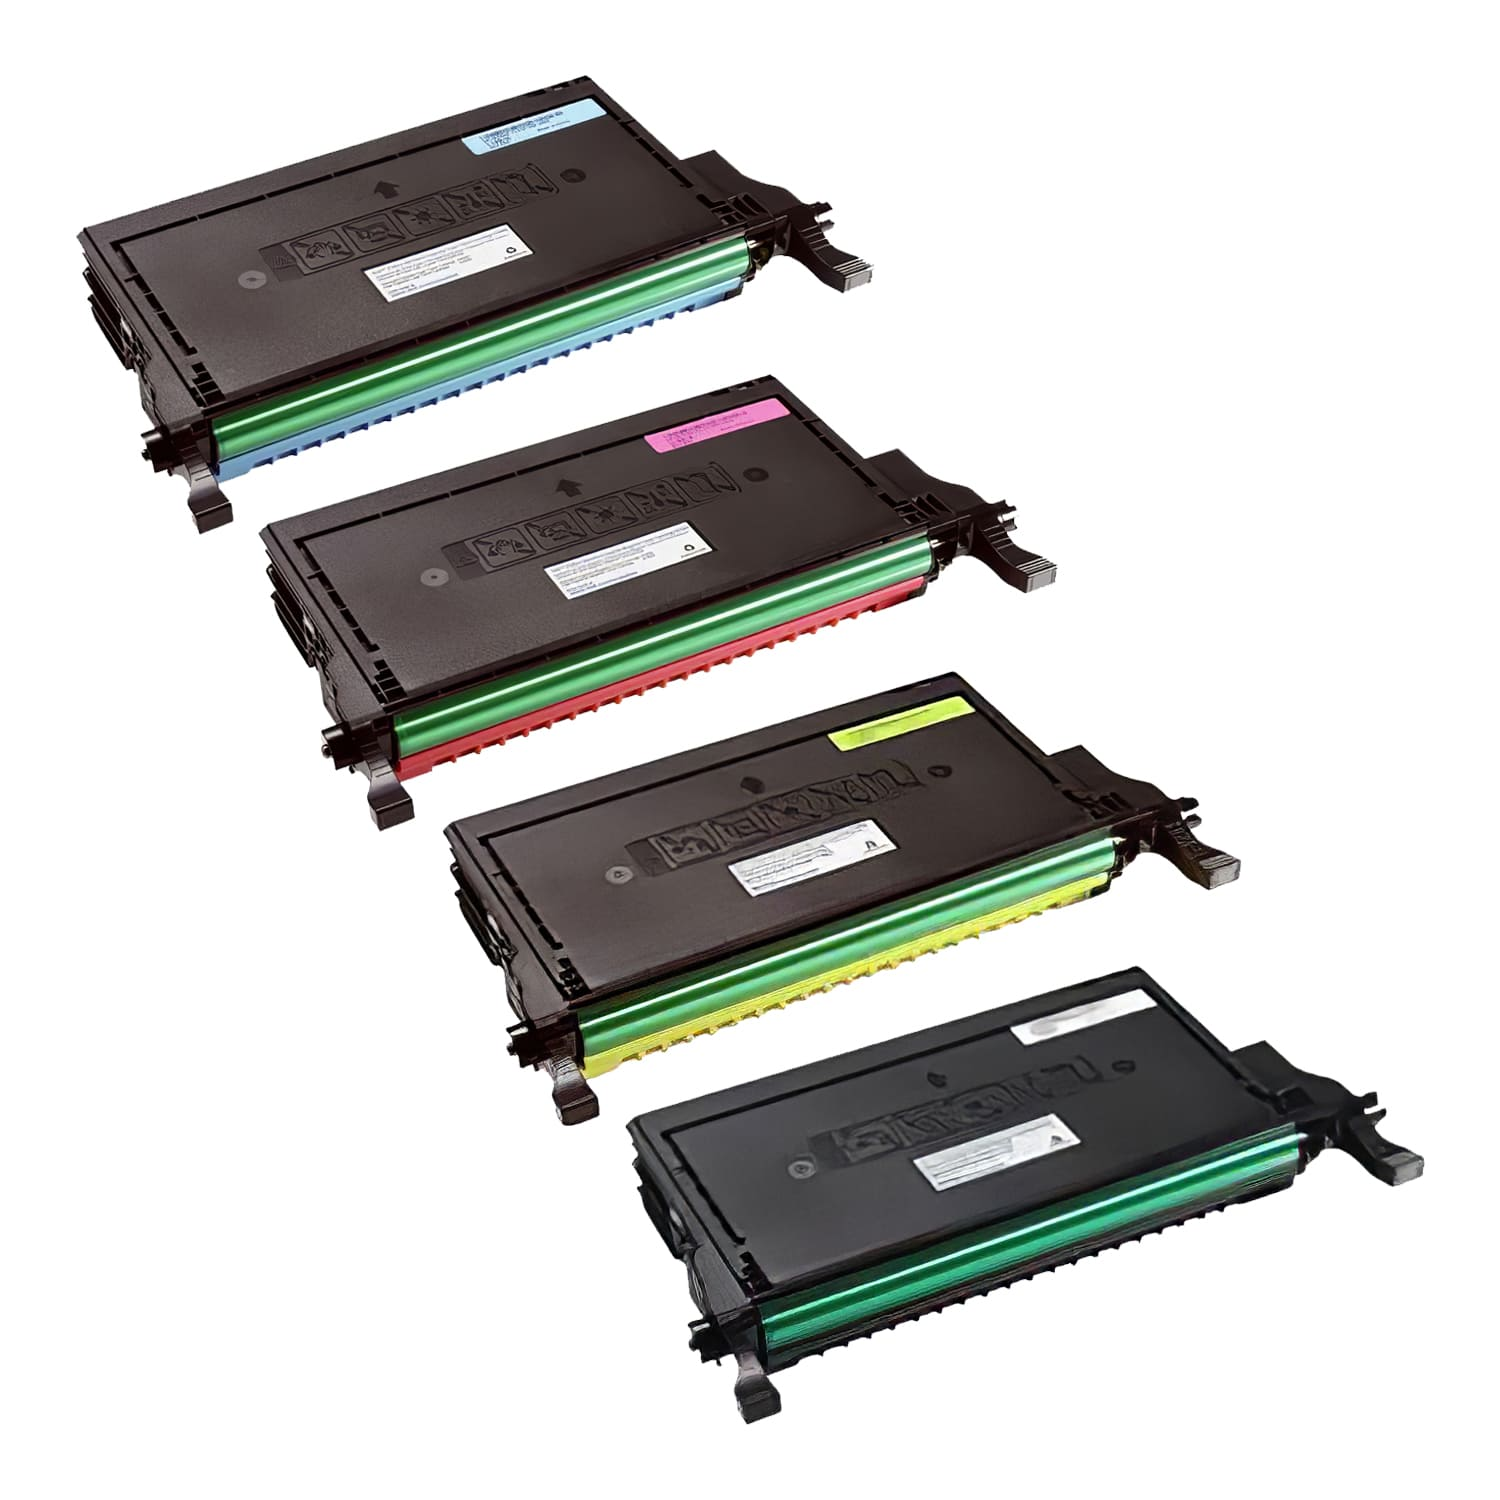 Remanufactured Dell 2145 Toner High Capacity Pack - 4 Cartridges